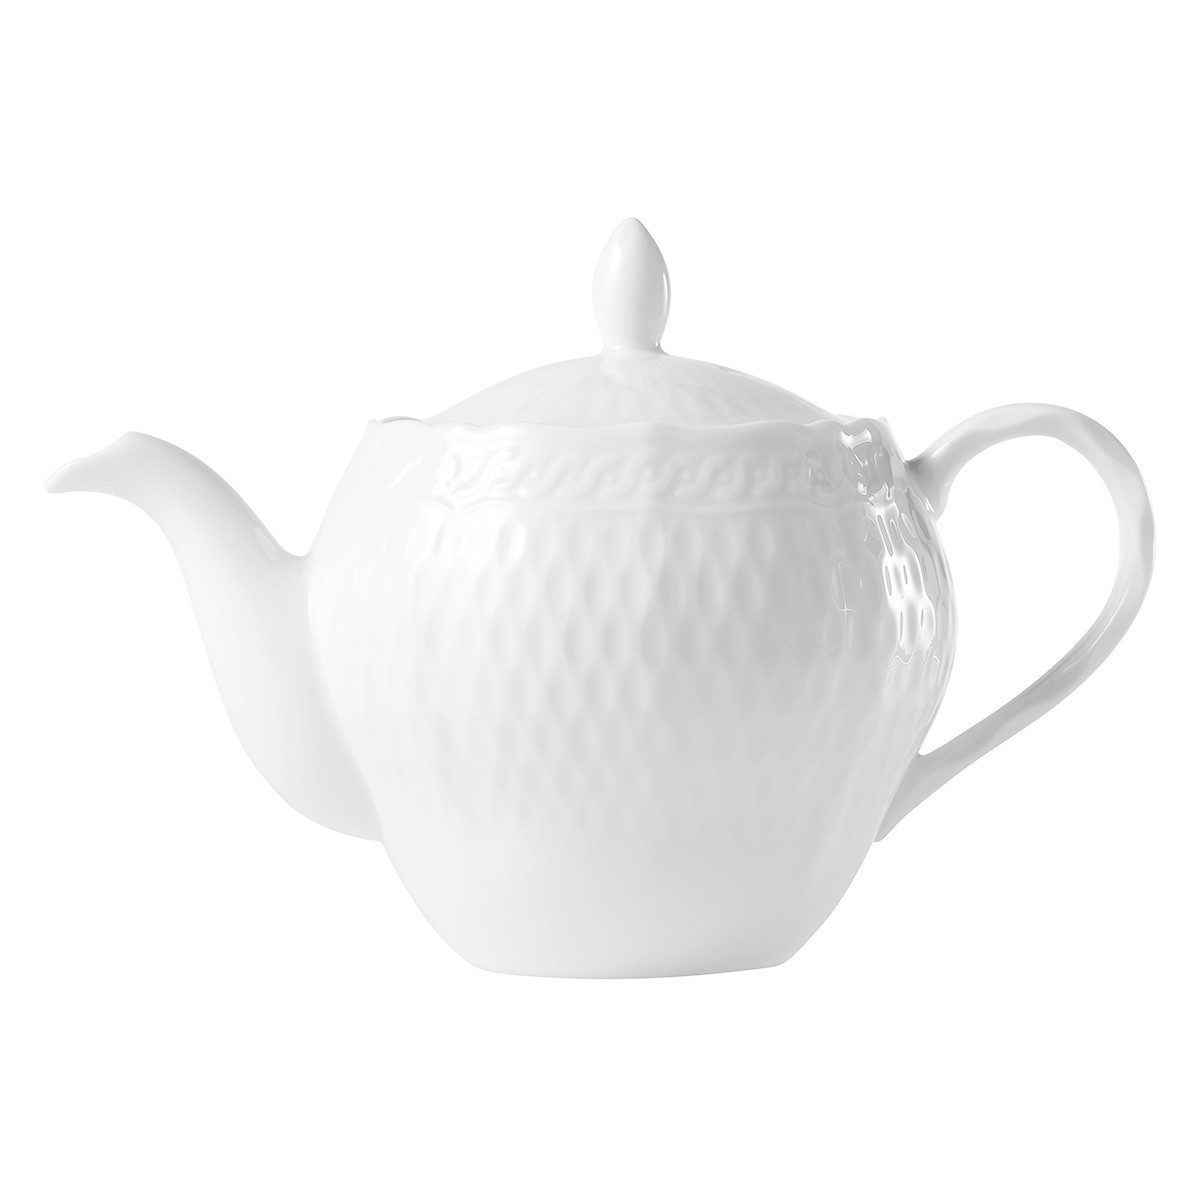 Noritake Cher Blanc Fine China Tea Pot